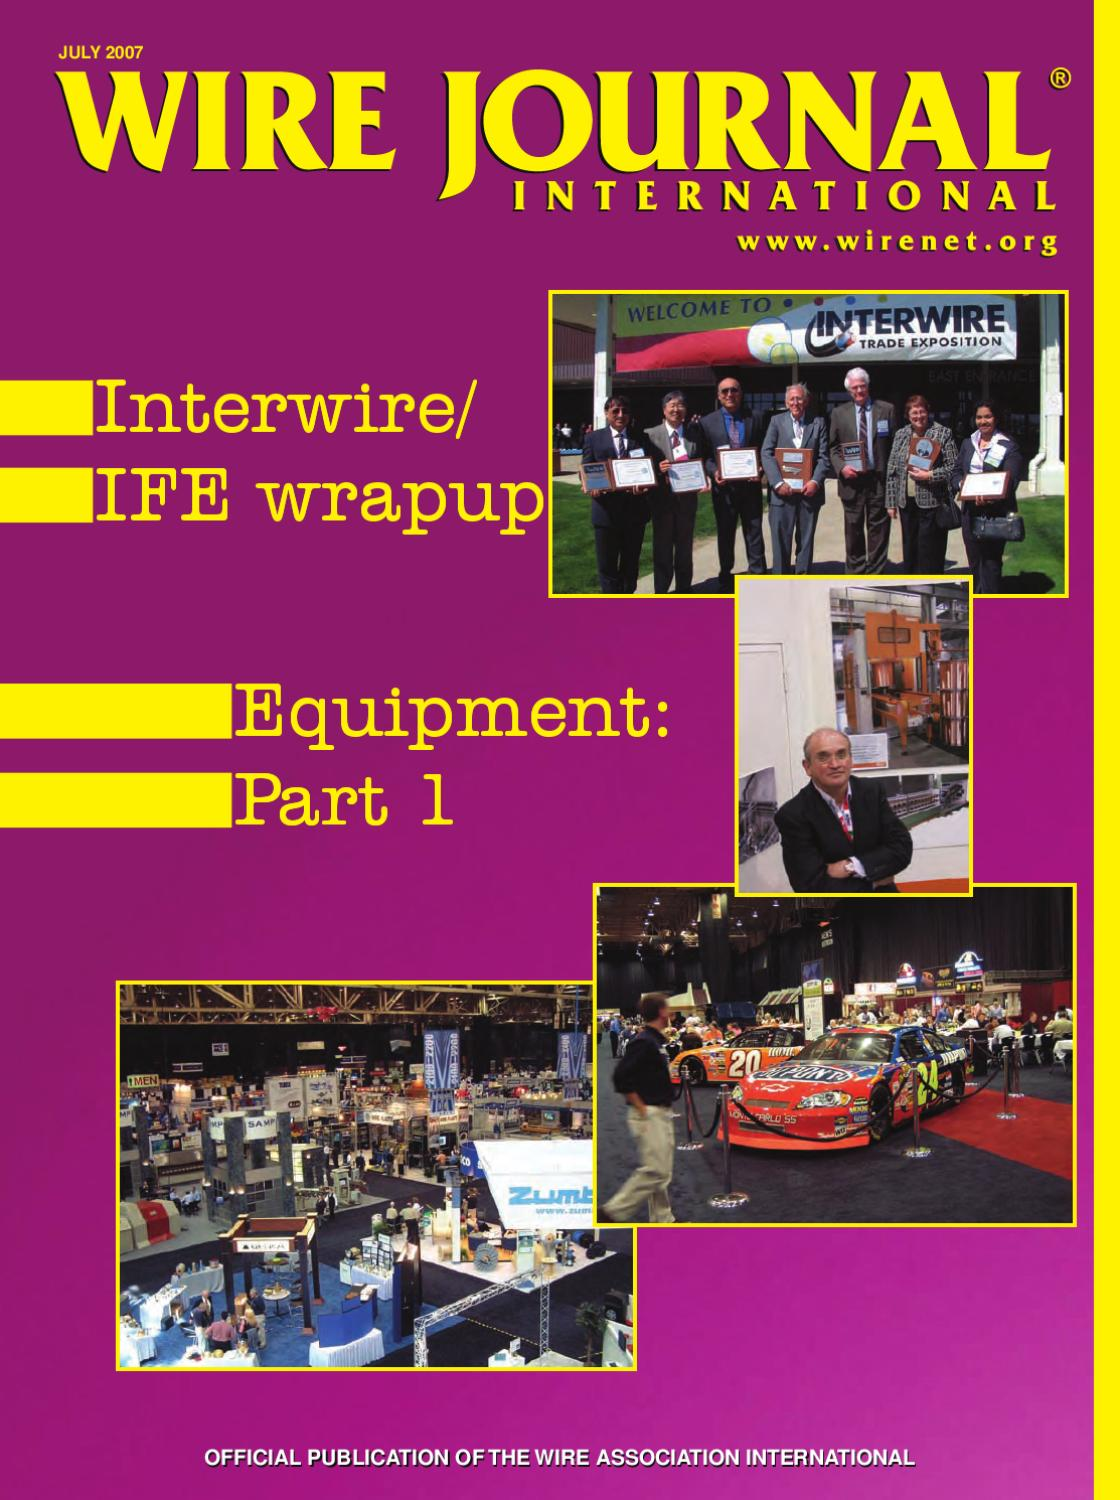 Equipment: Part 1 by Wire Journal International, Inc. - issuu